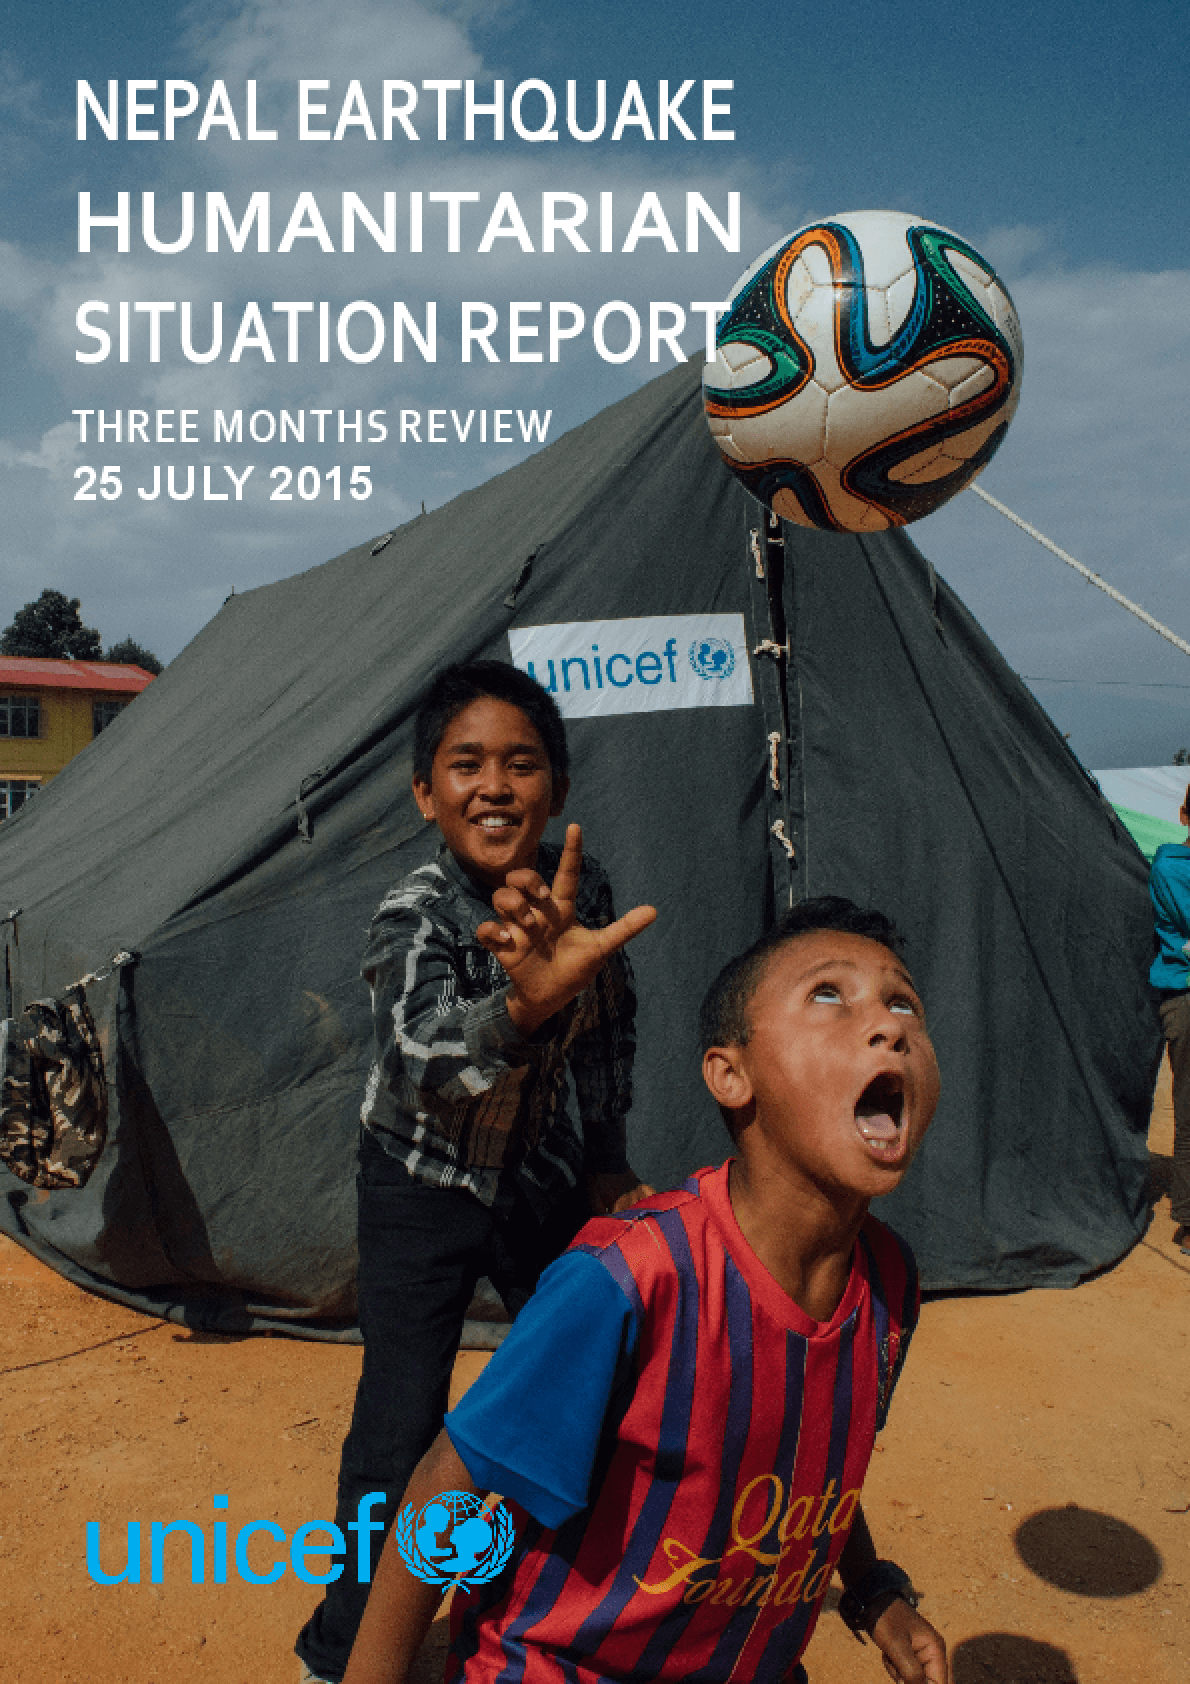 Nepal Earthquake Humanitarian Situation Report: Three Months Review